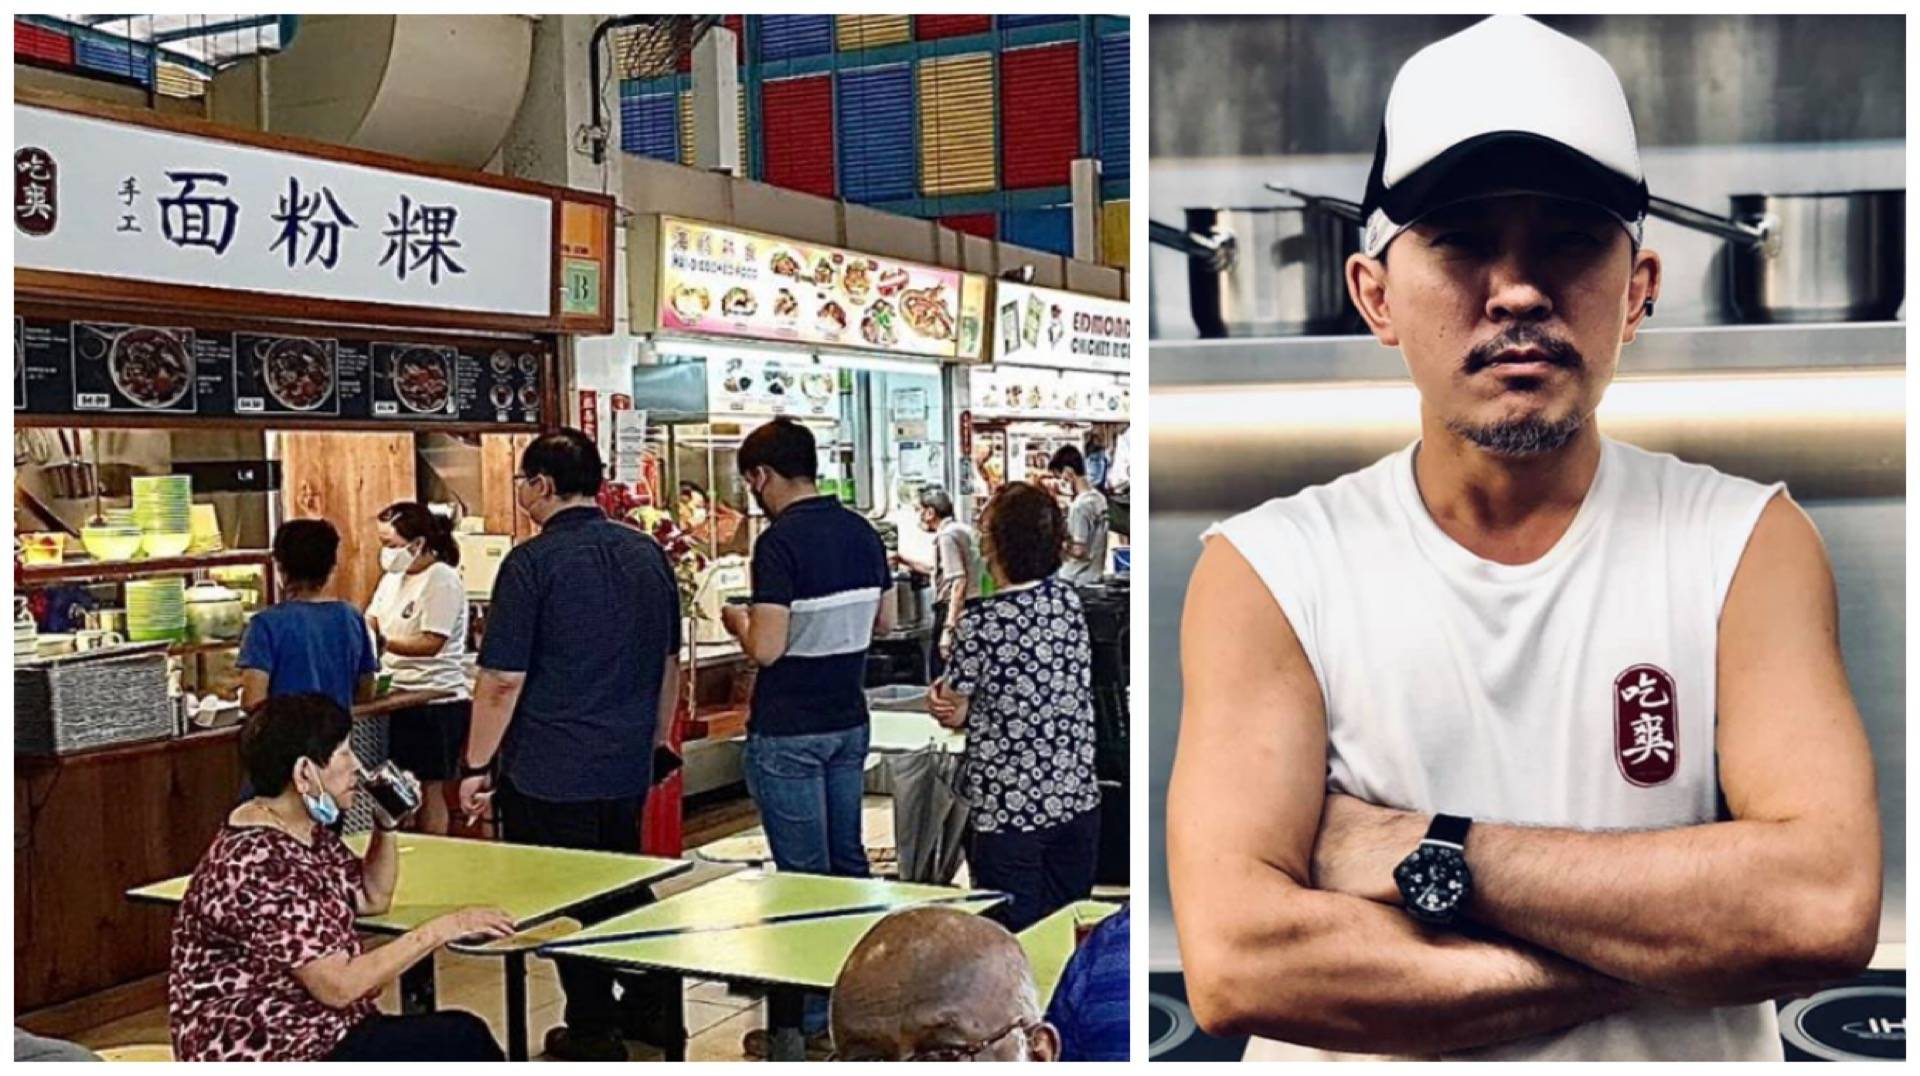 What better way to learn the hawker trade than from this no-nonsense MasterChef Singapore finalist at his mee hoon kueh stall.